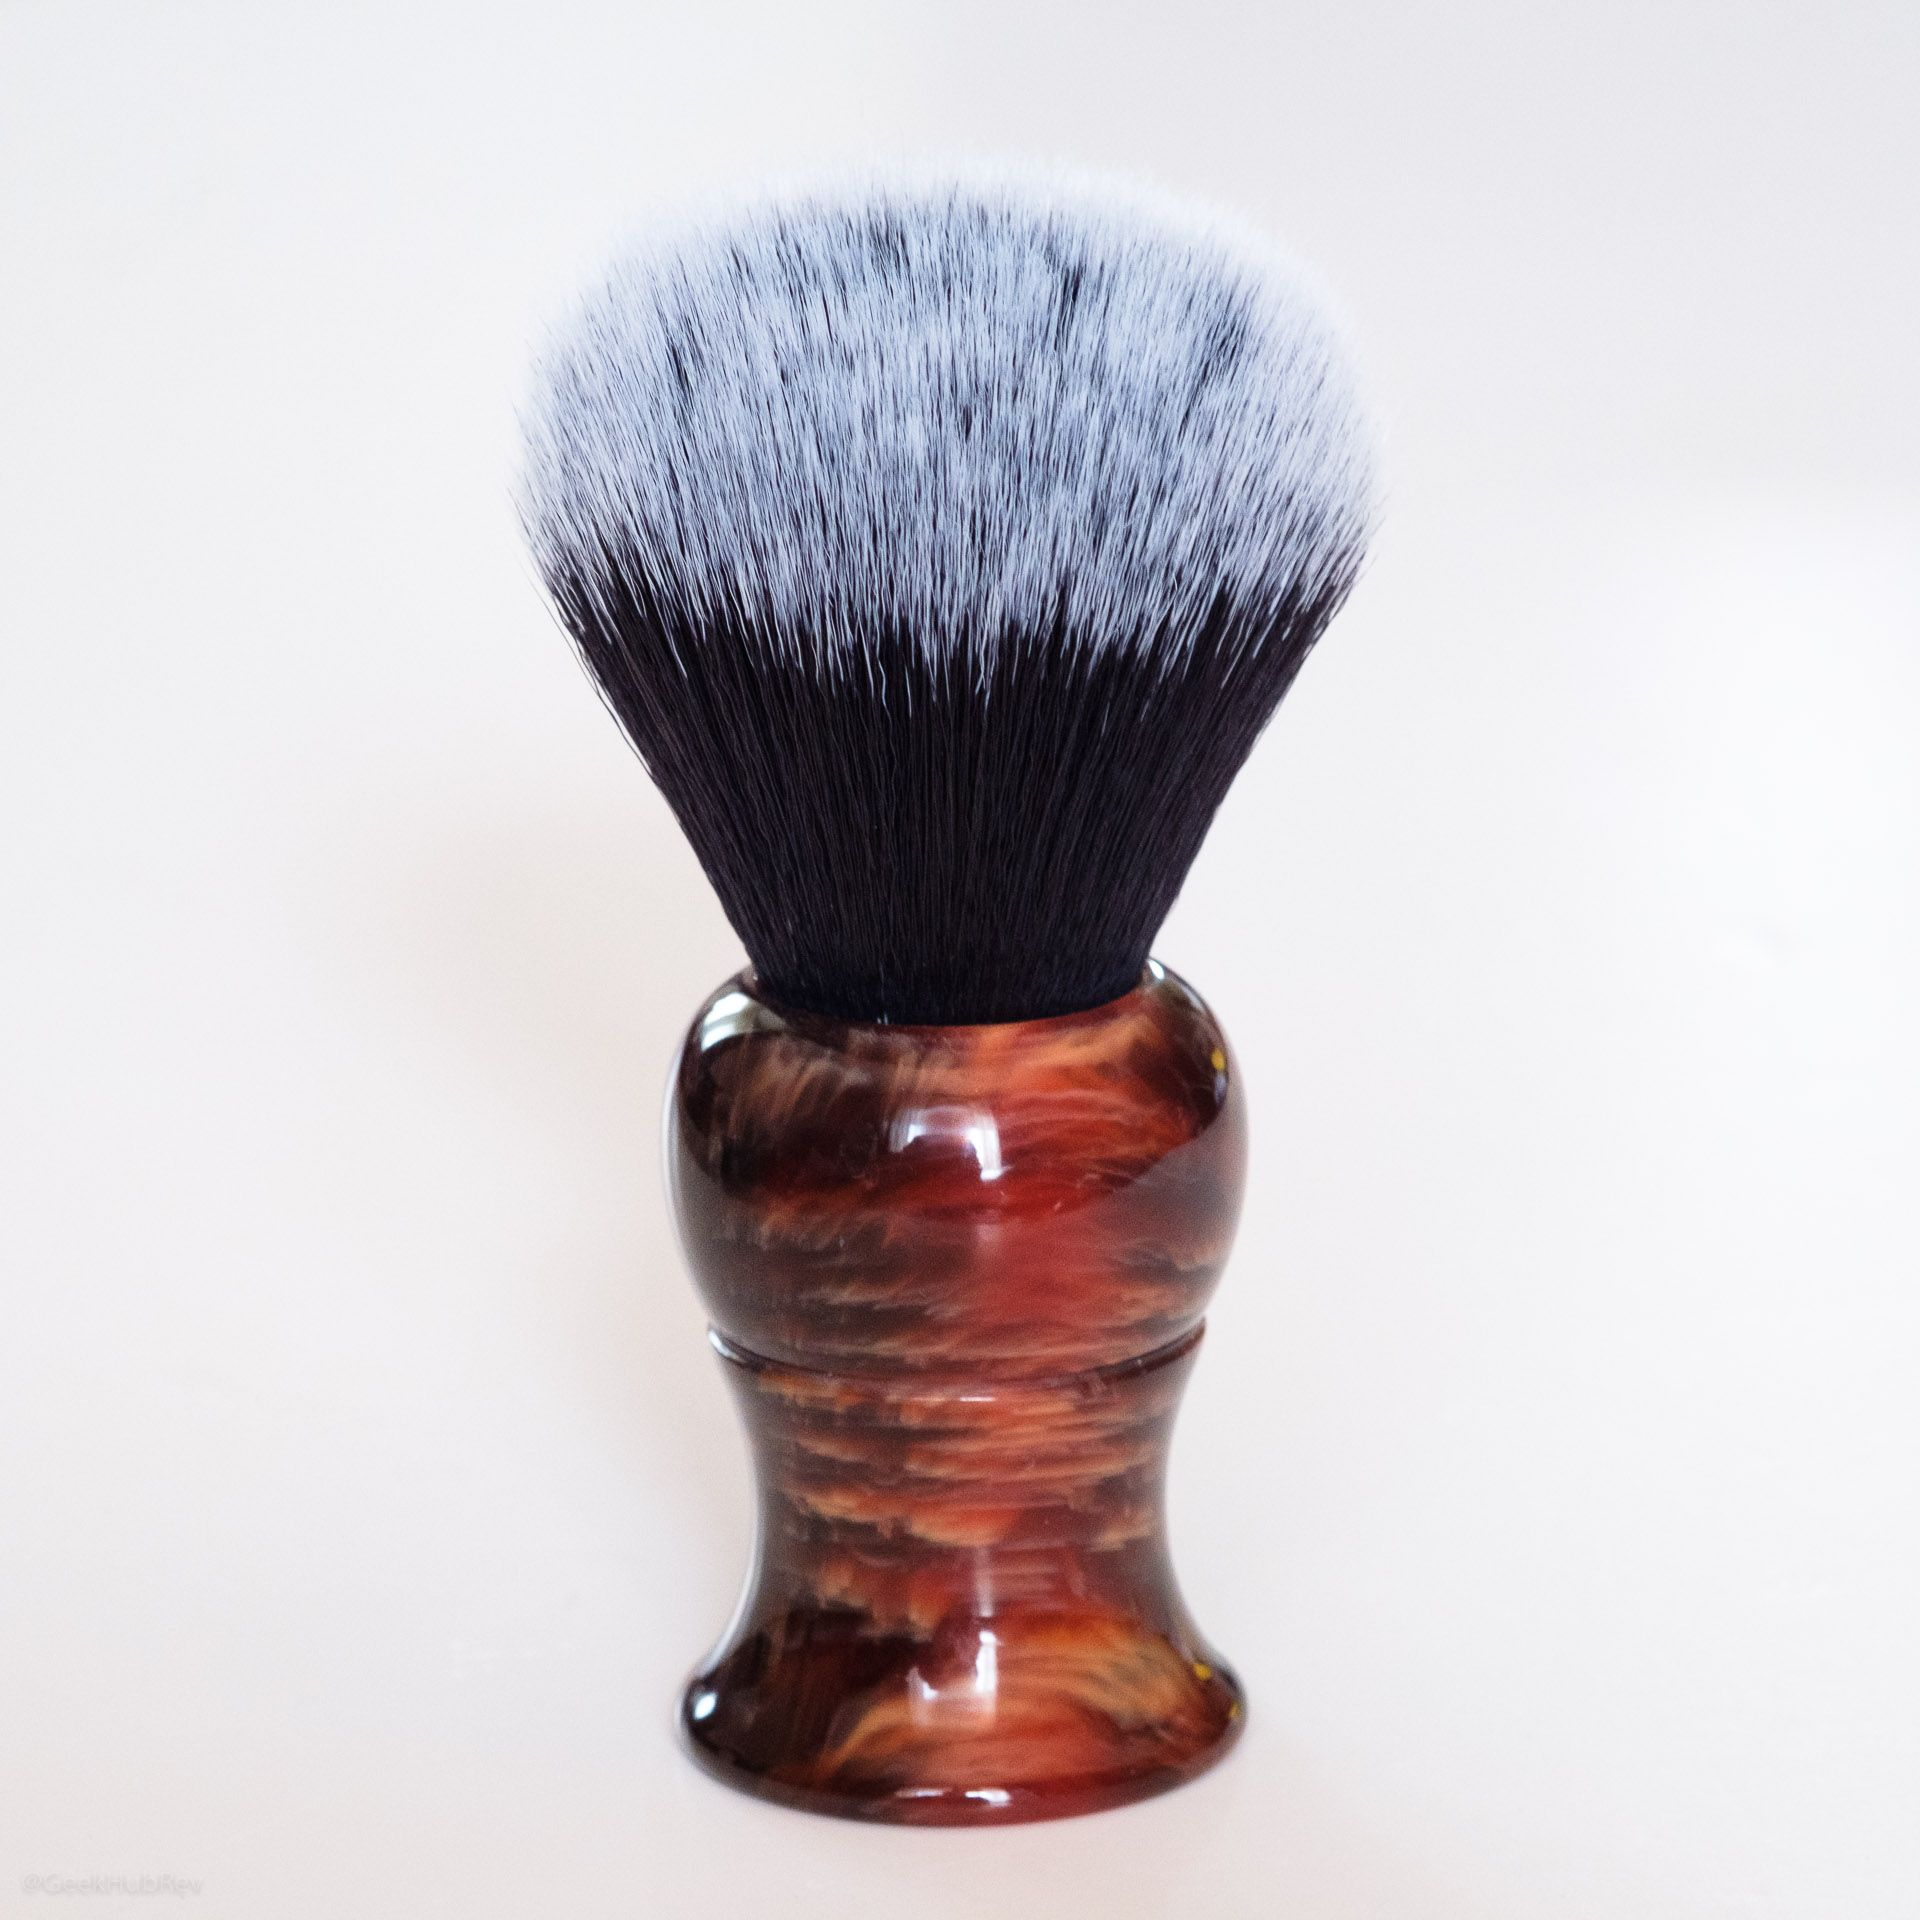 Pędzel do golenia Yaqi R151111S1-26 Tuxedo Synthetic Shaving Brush